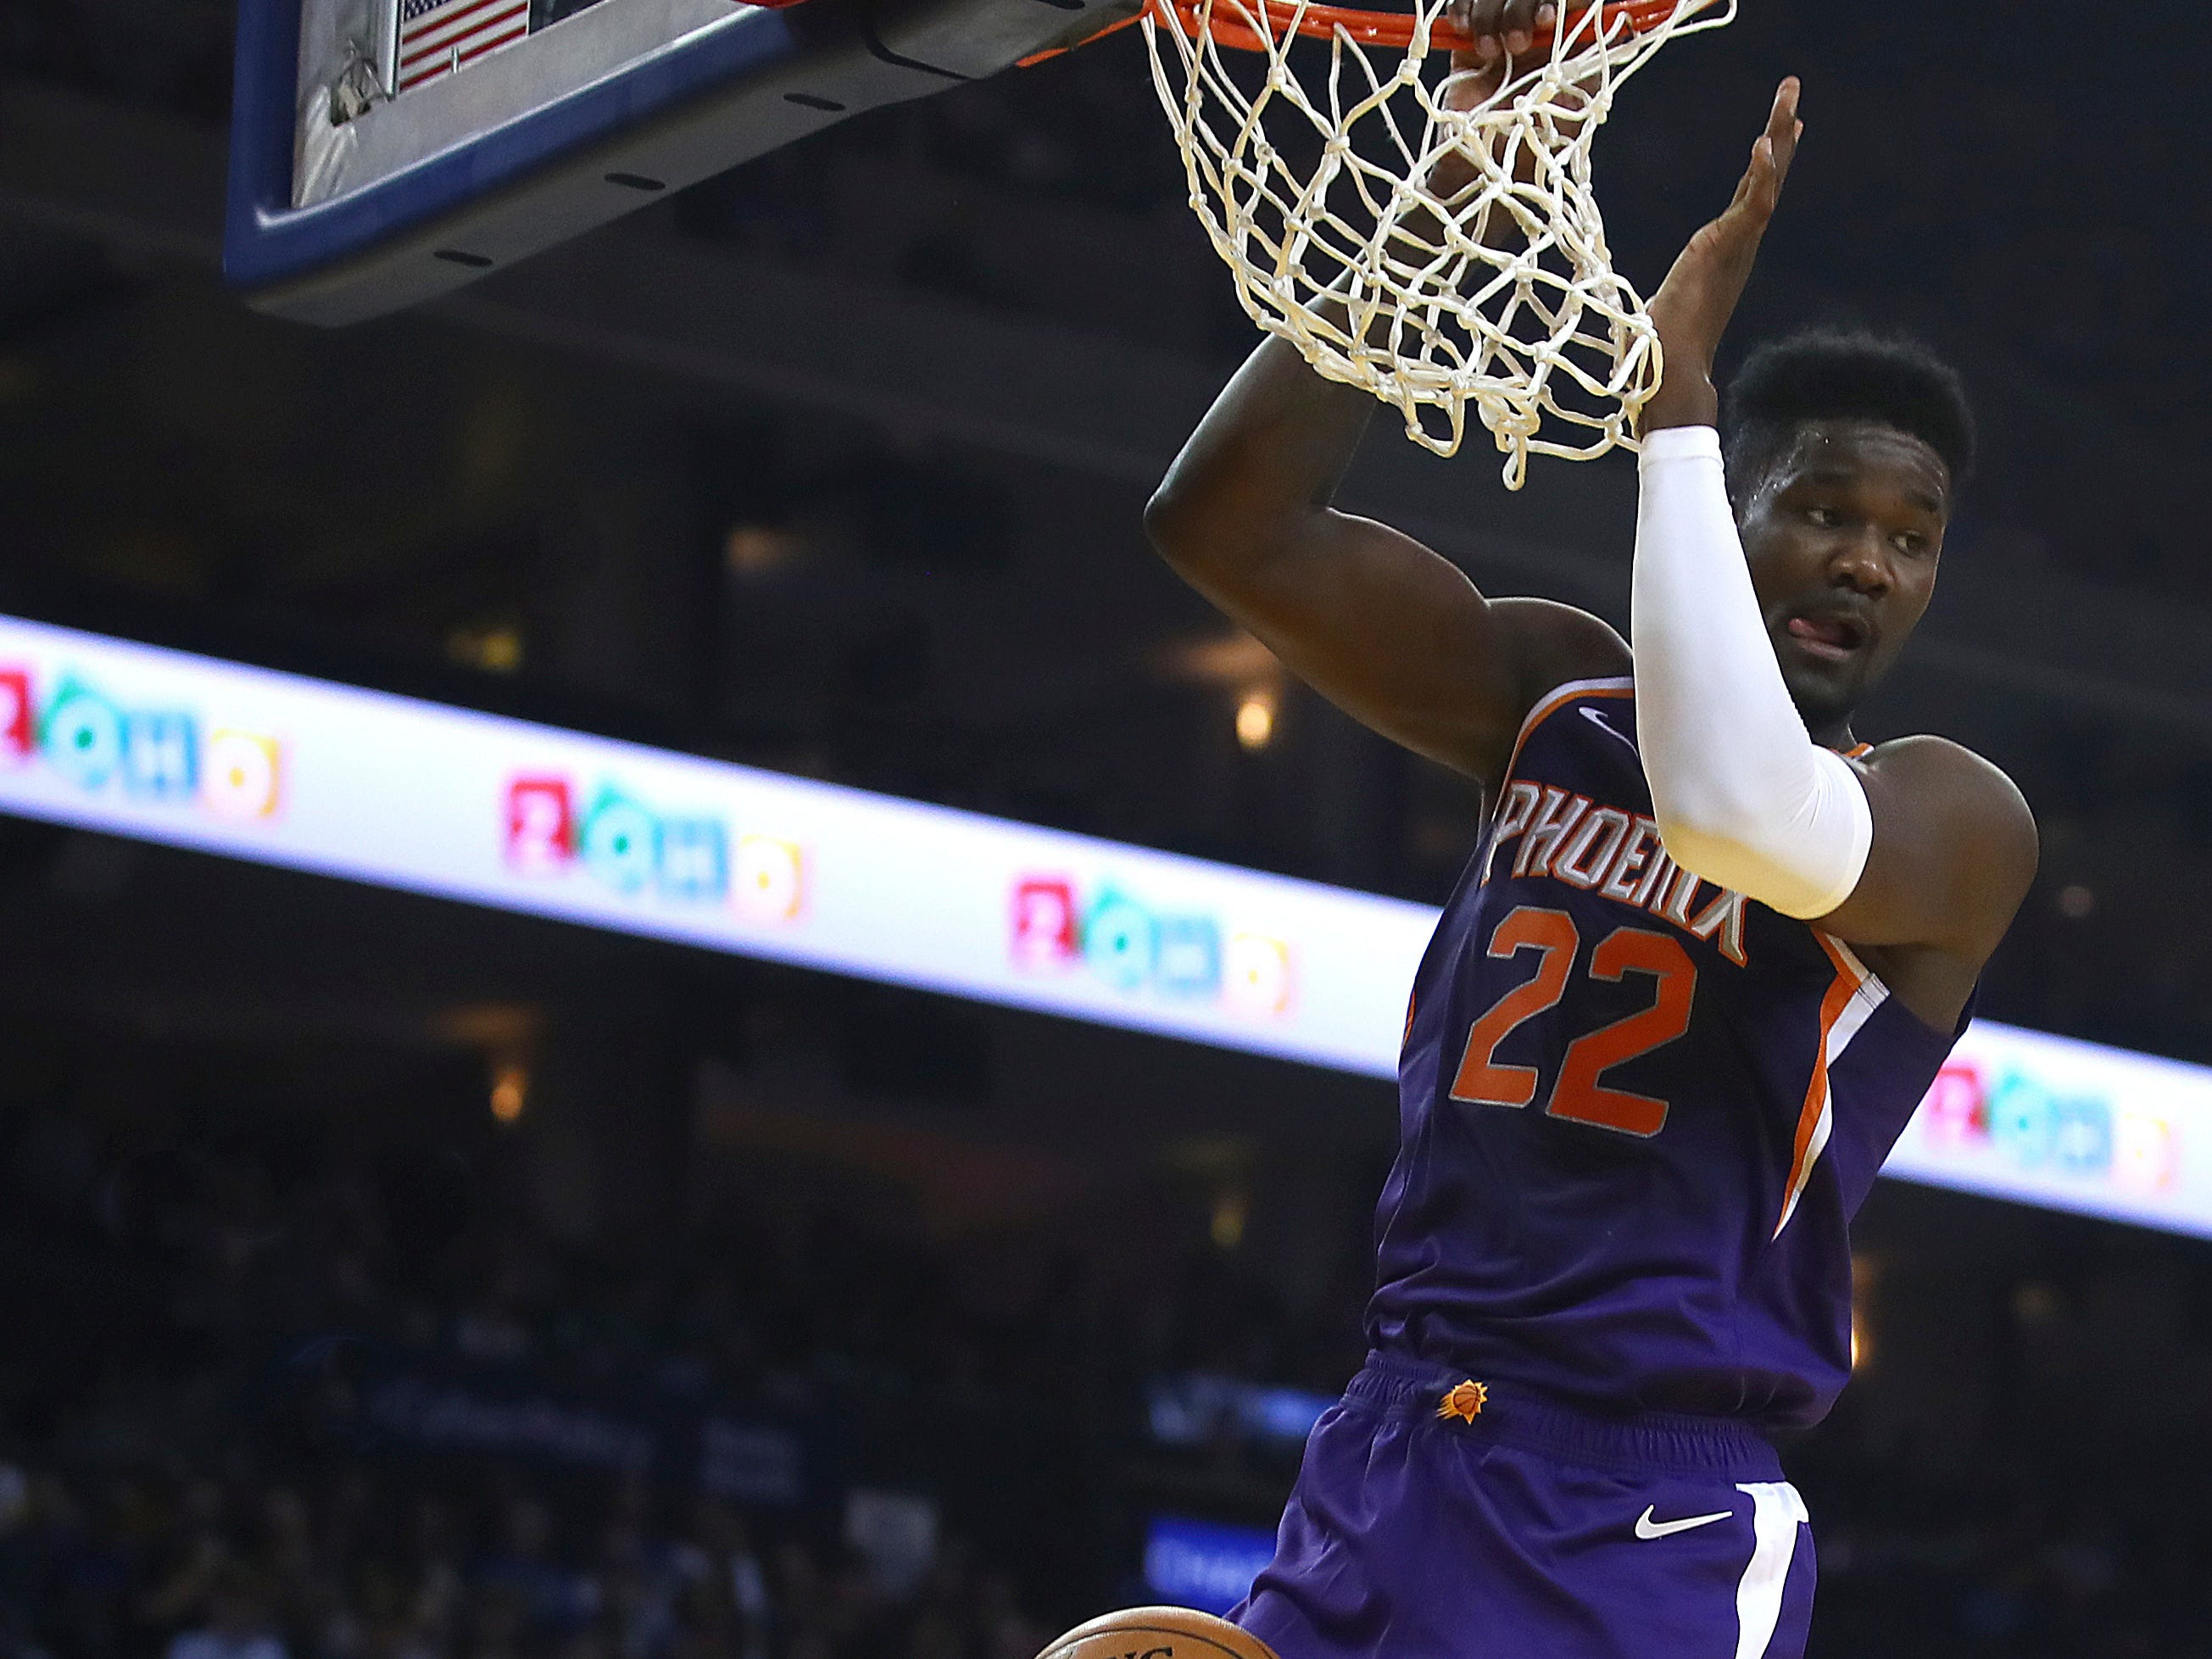 Phoenix Suns' Deandre Ayton (22) scores against the Golden State Warriors during the first half of a preseason NBA basketball game Monday, Oct. 8, 2018, in Oakland, Calif.